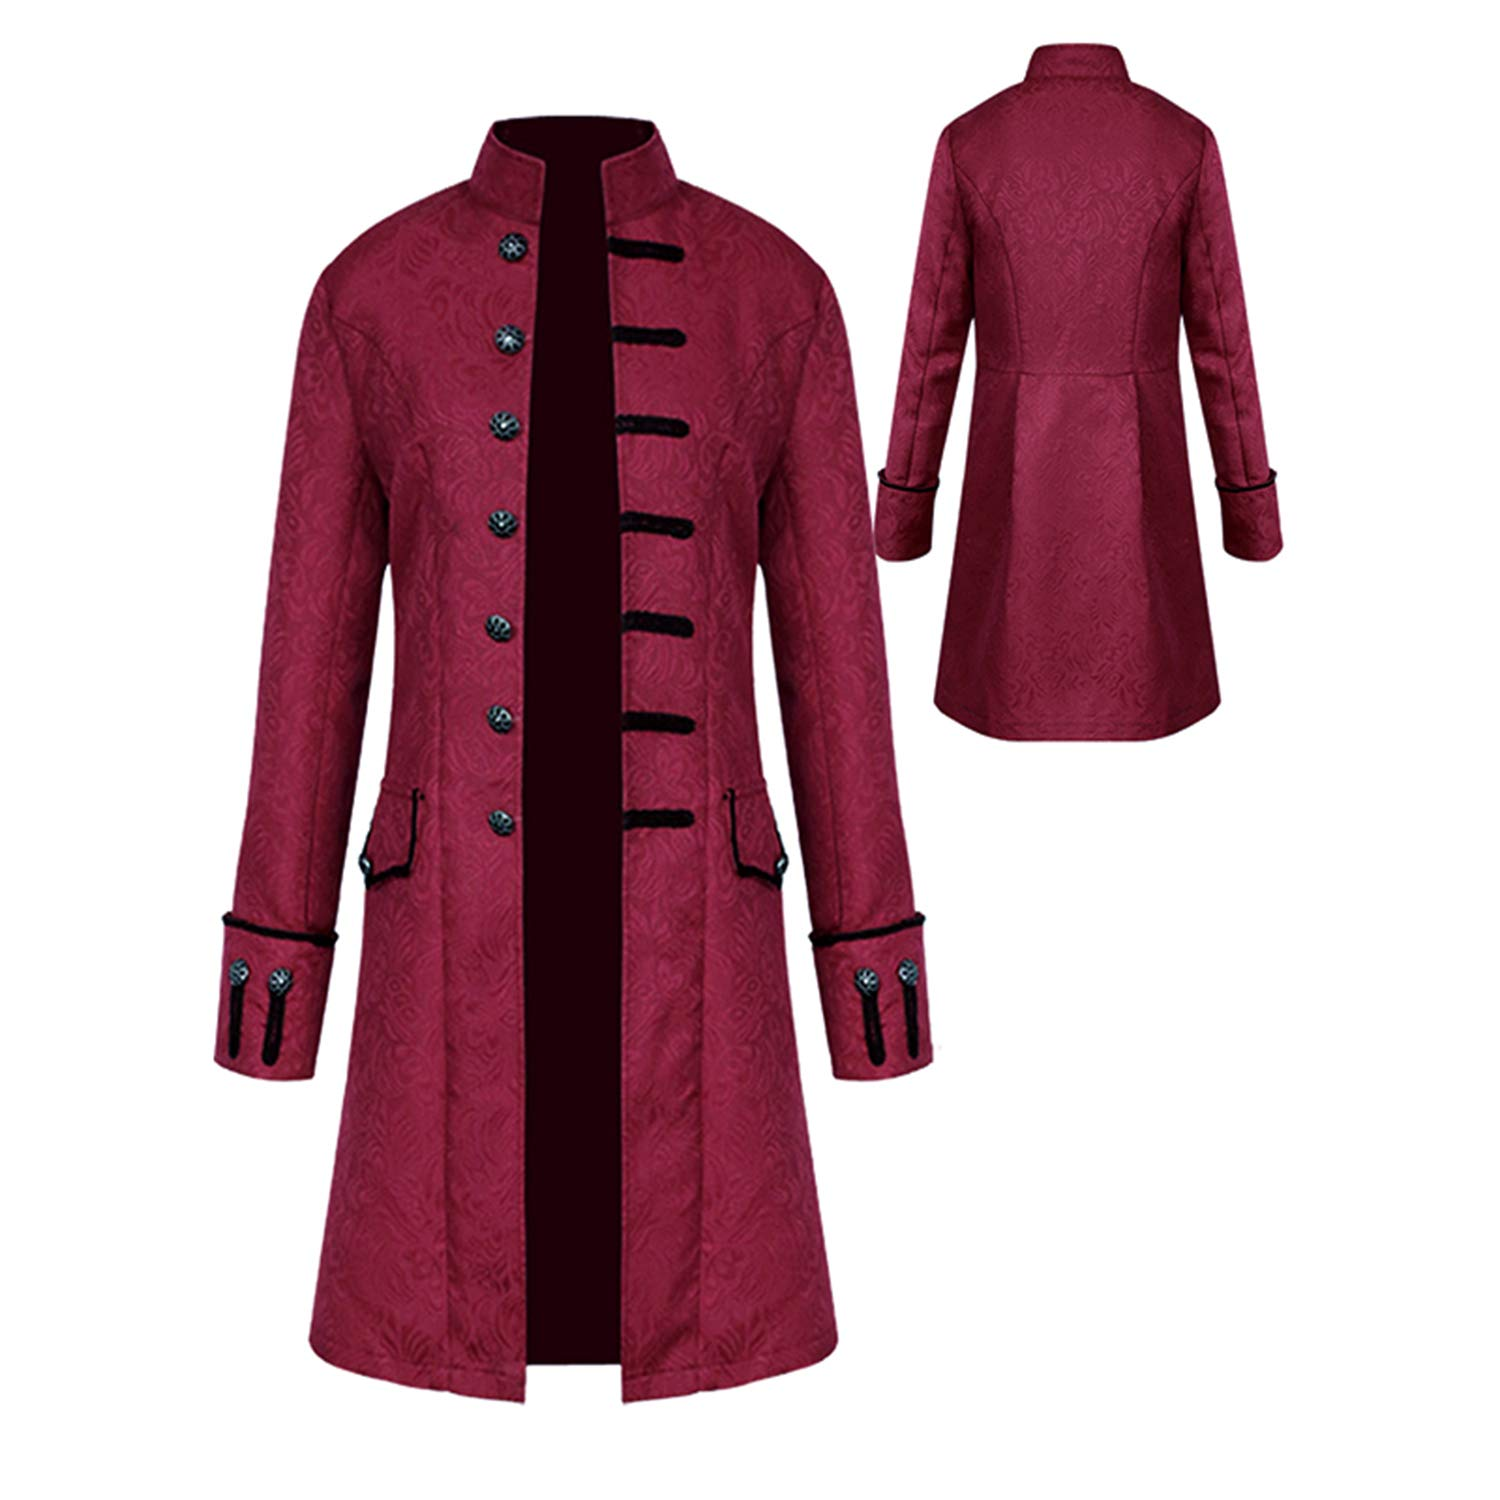 Mens Vintage Tailcoat Jacket Goth Long Steampunk Formal Gothic Victorian Frock Coat Costume for Halloween